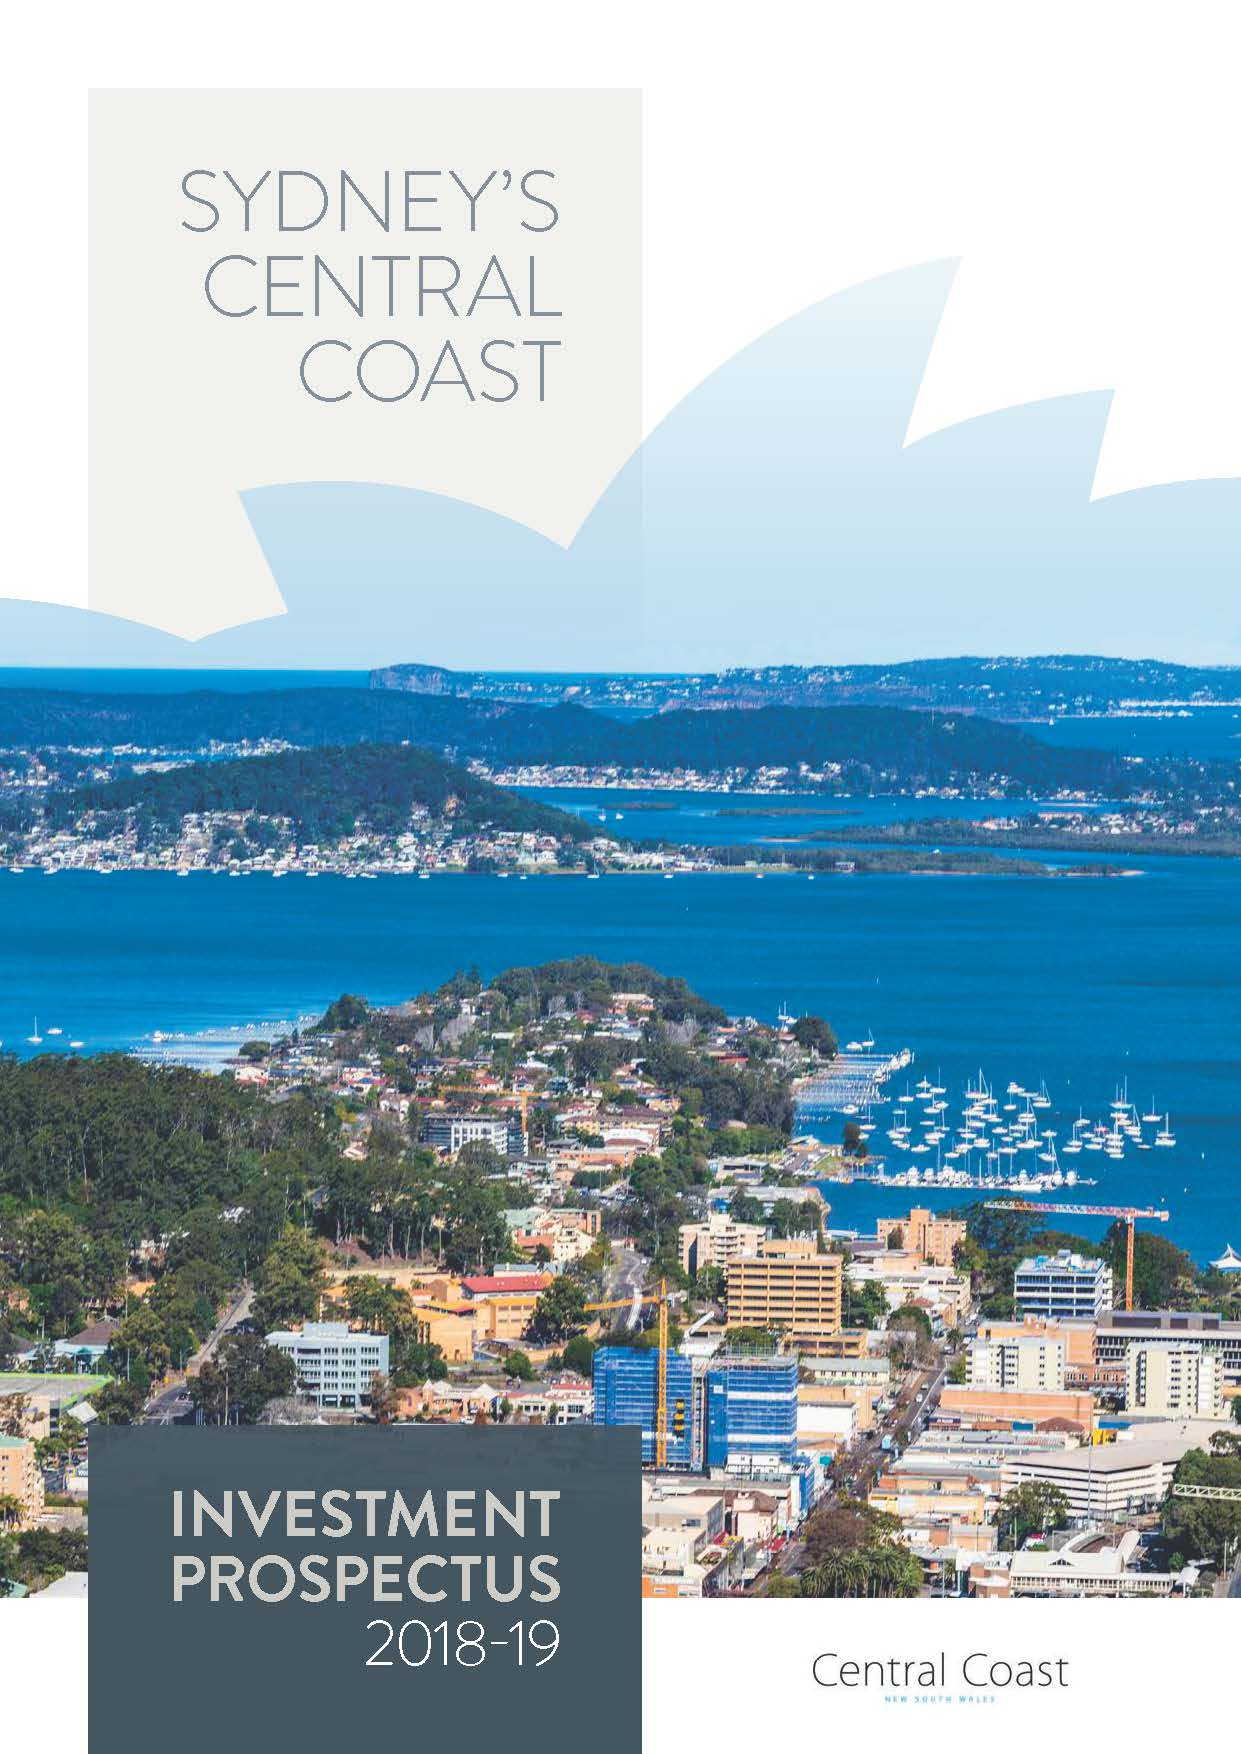 Central Coast investment prospectus 2015-16 cover